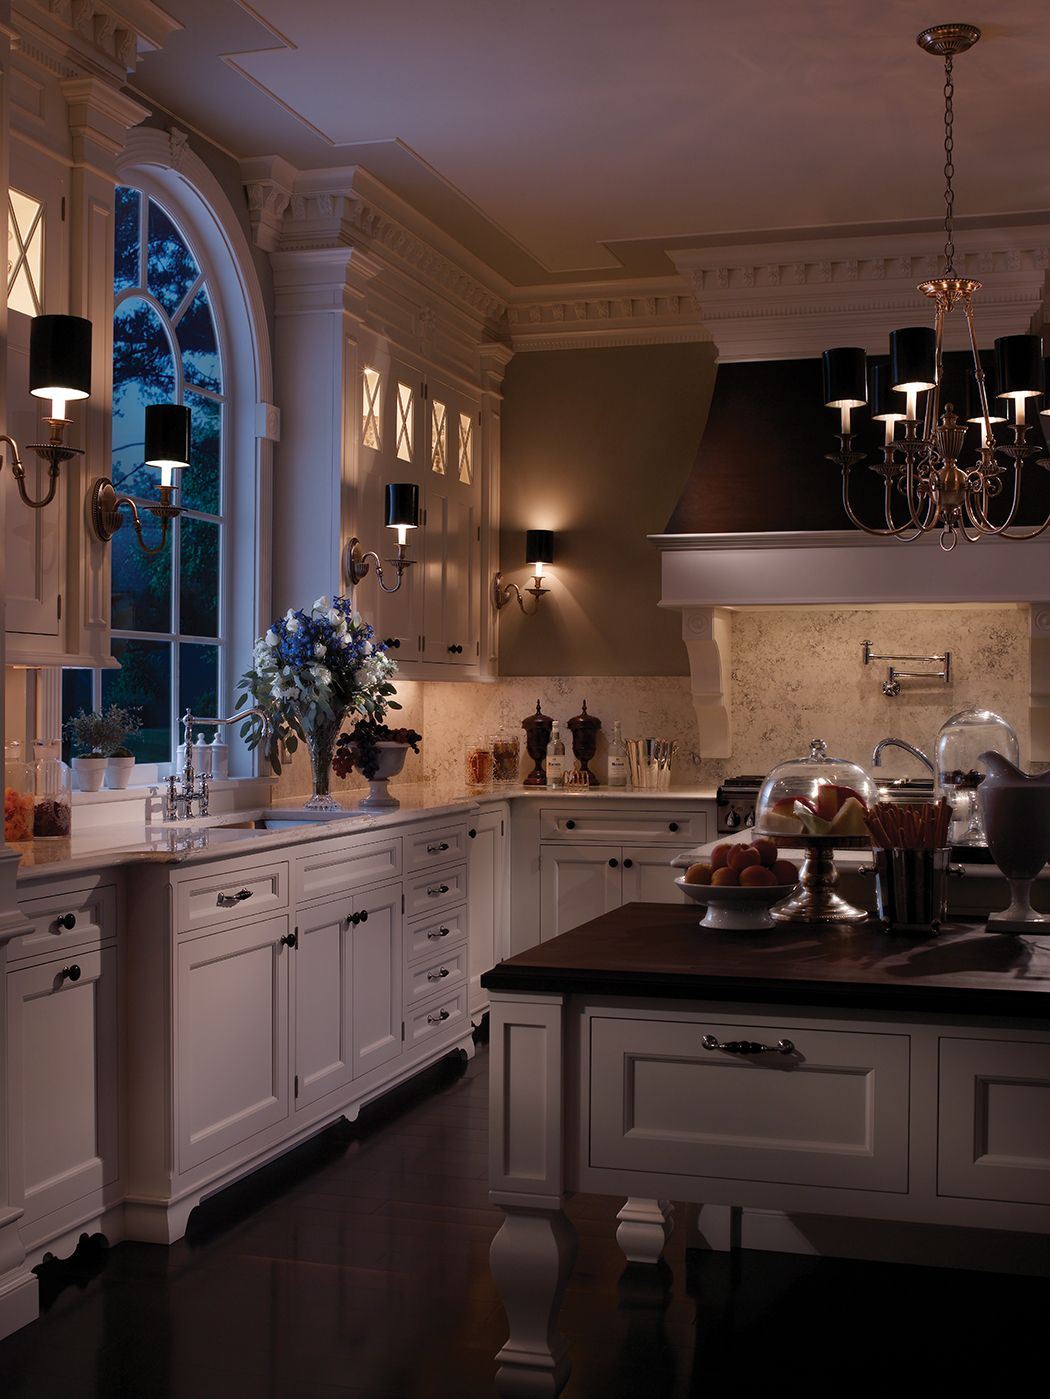 Traditional Southampton Kitchen By Woodmode Shown In Nordic White Finish On Regent Door Style Home Decor Kitchen Luxury Kitchens Beautiful Kitchens